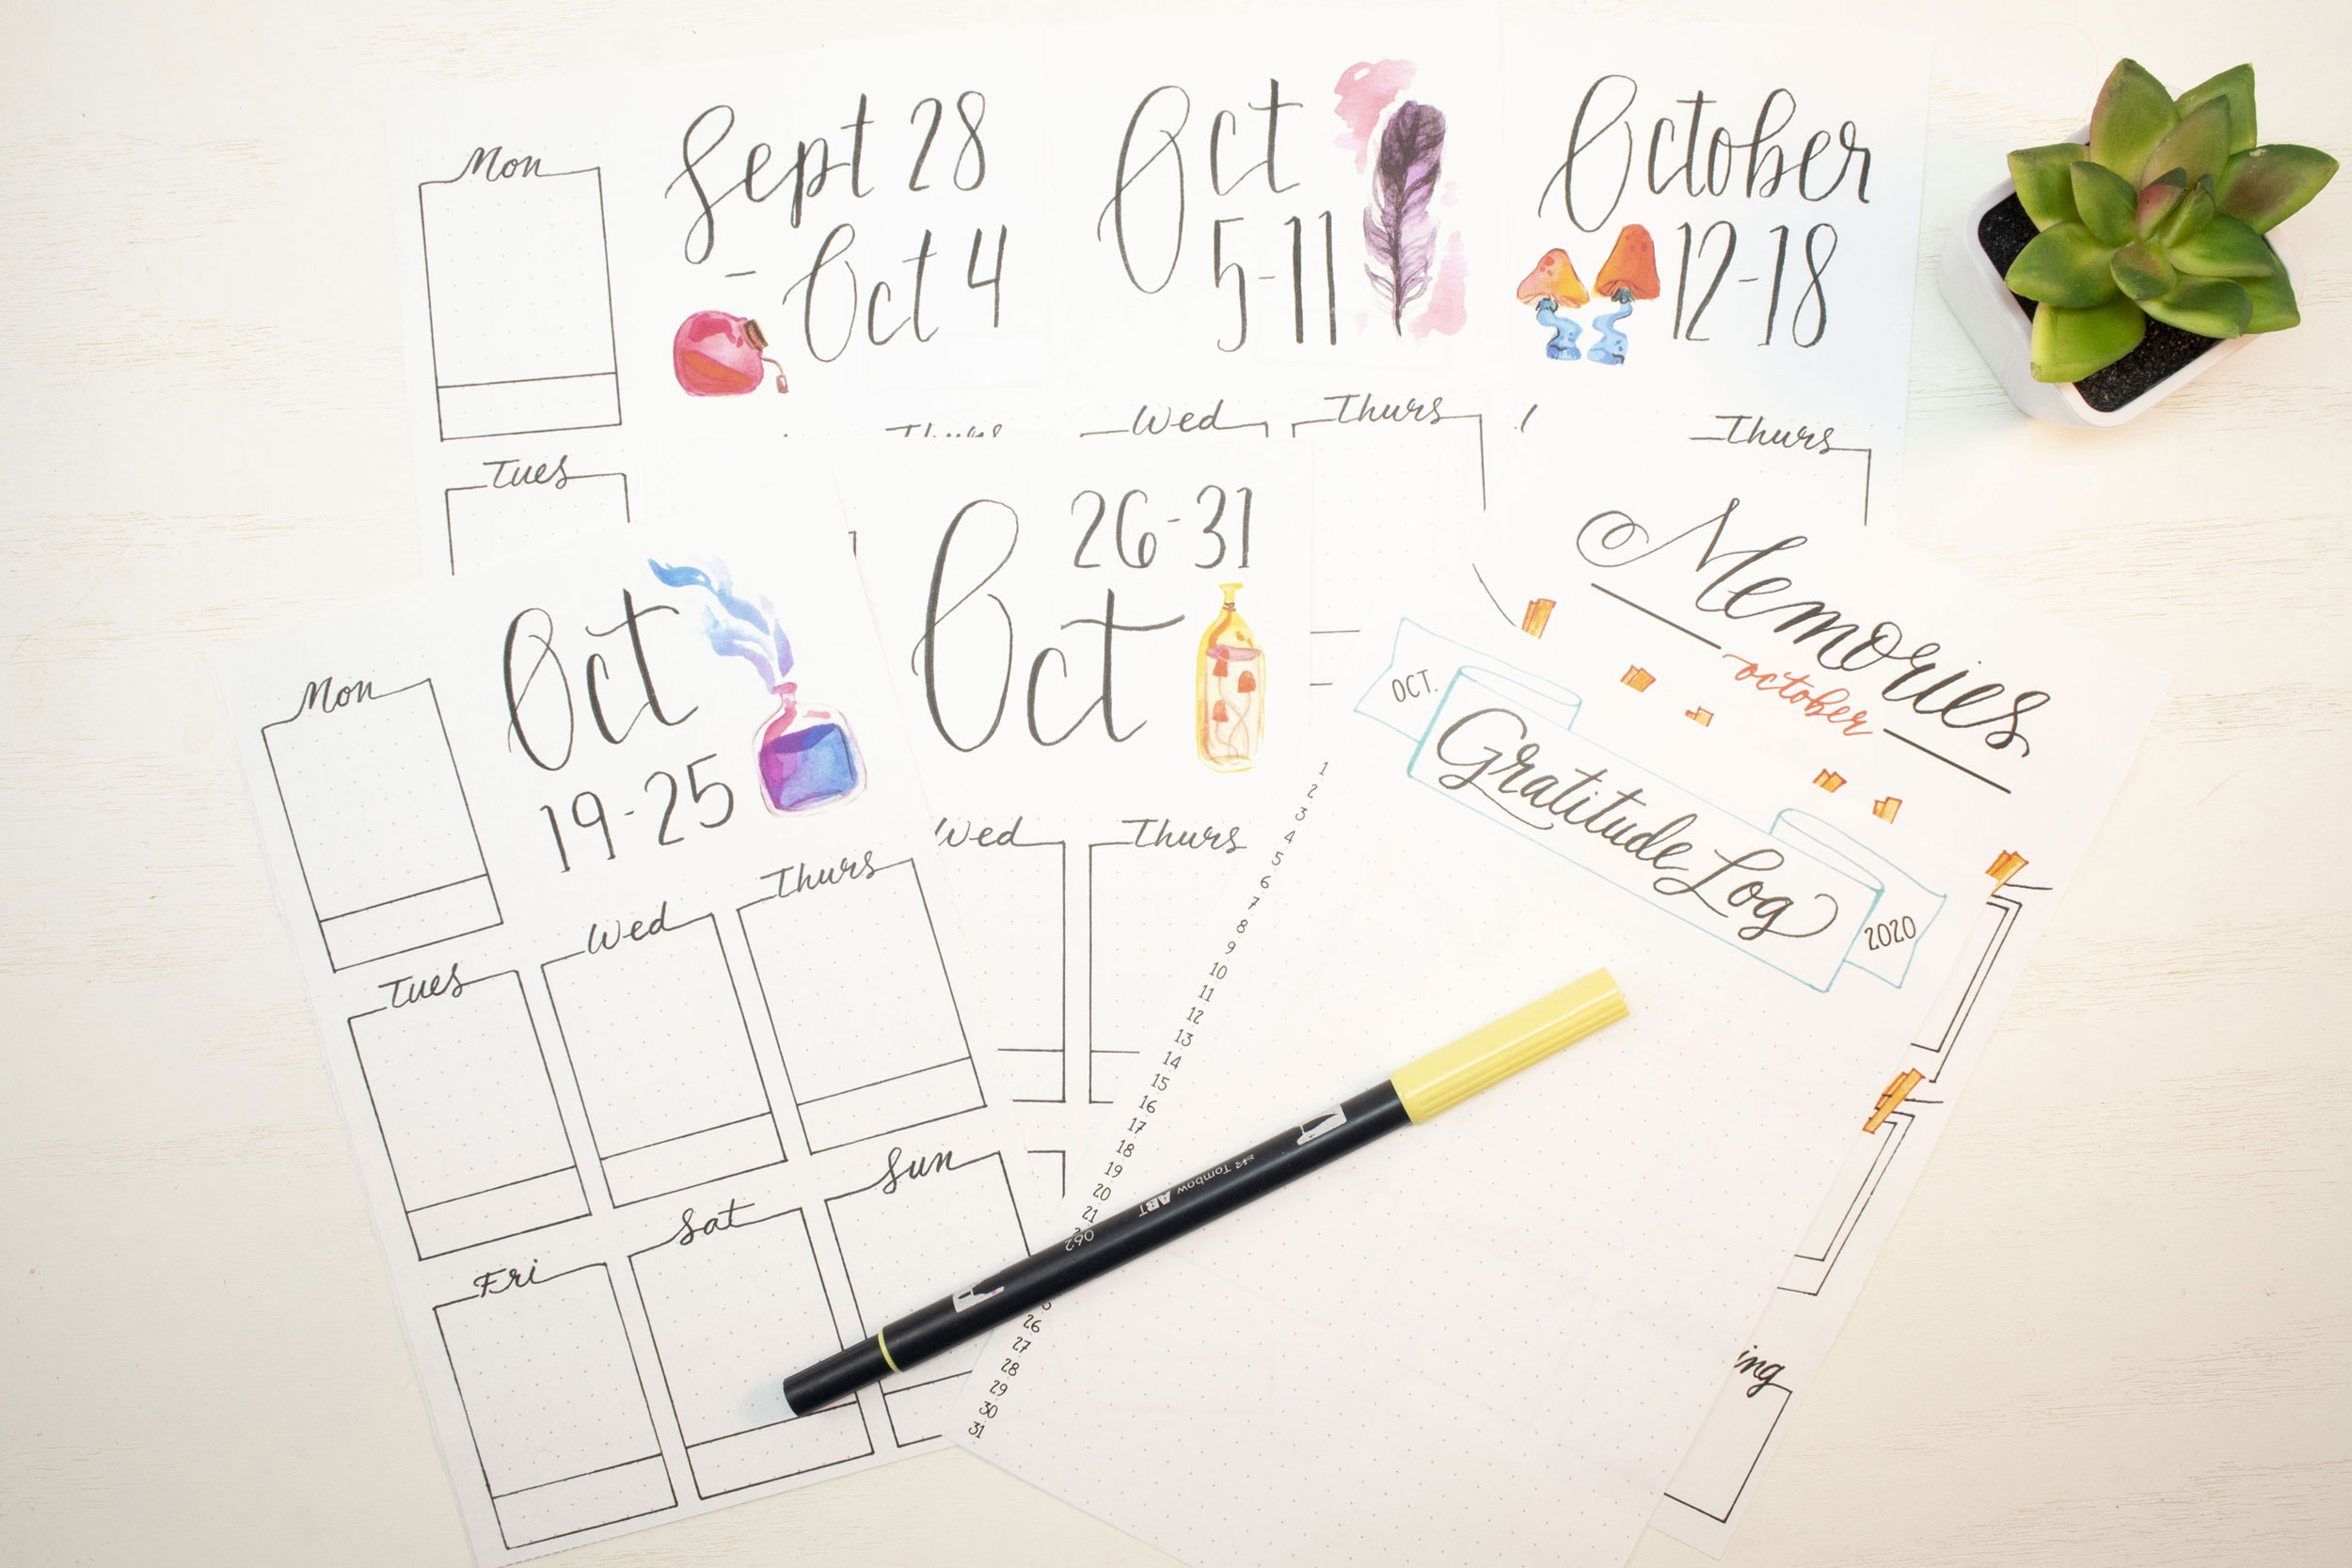 October 2020 Bullet Journal weekly planning spreads.